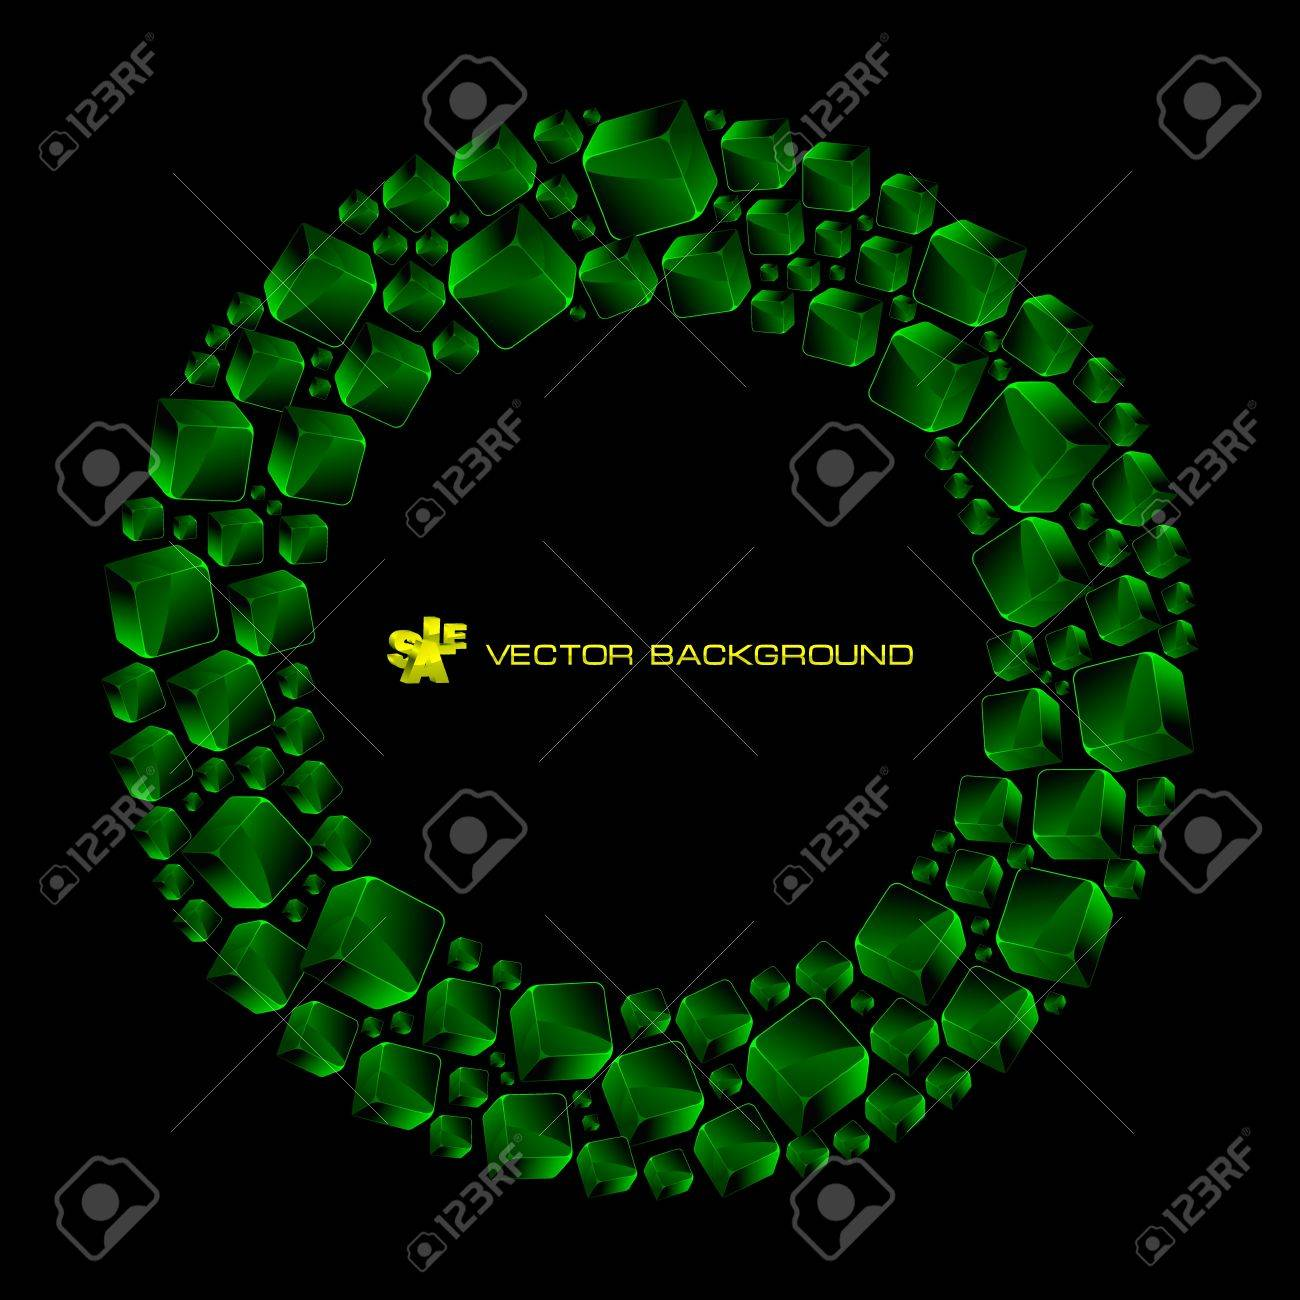 Abstract background with green boxes Stock Vector - 11885547